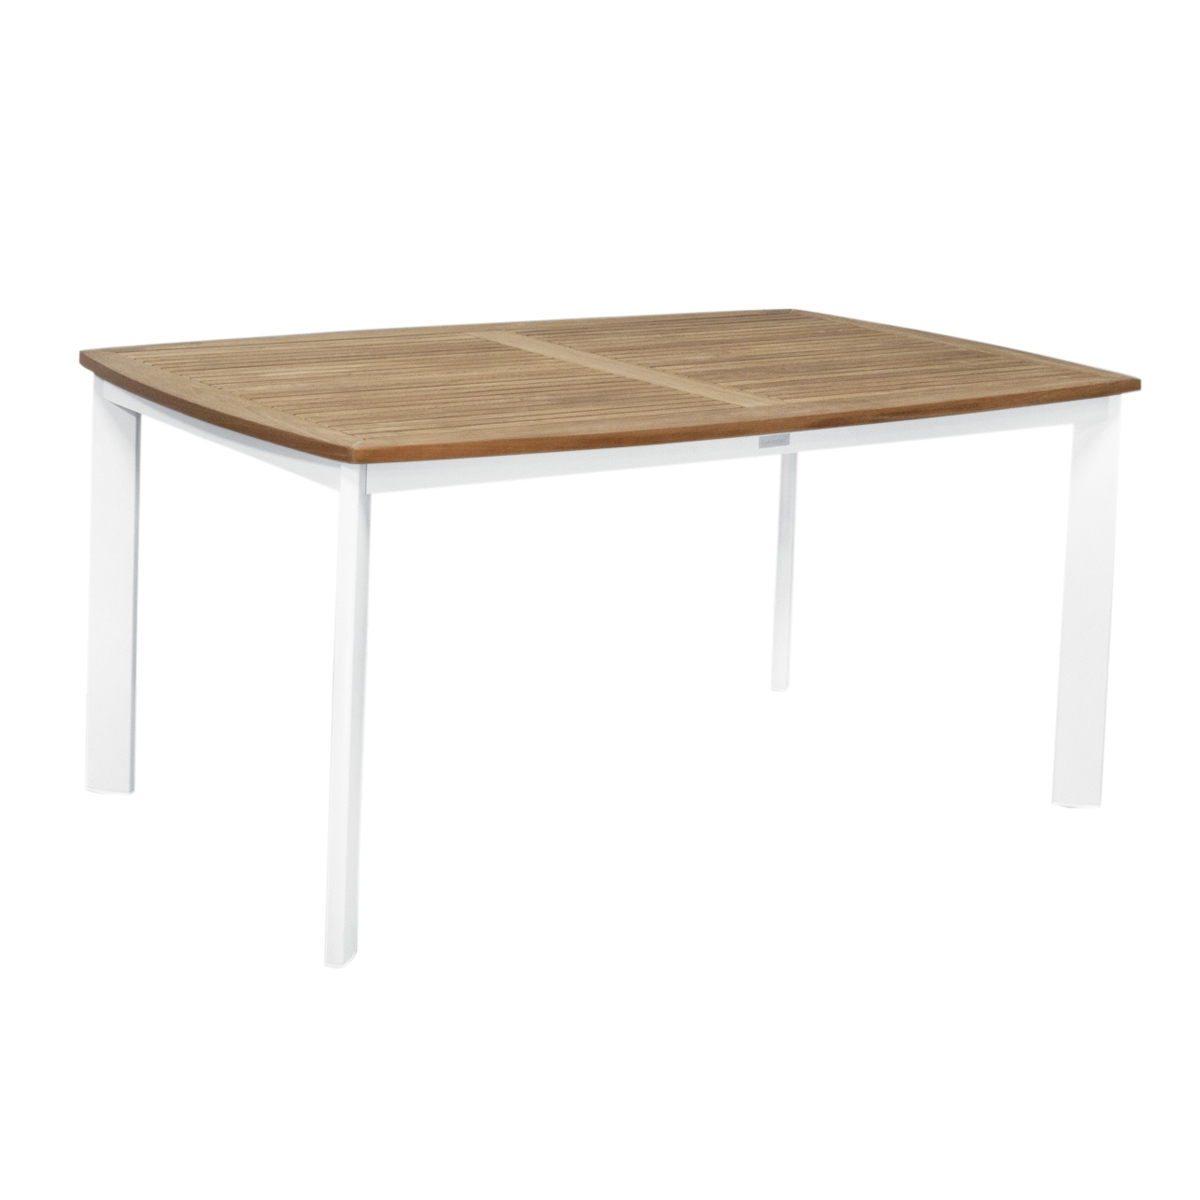 Table de jardin en aluminium teck neo tresi zendart design for Table jardin design